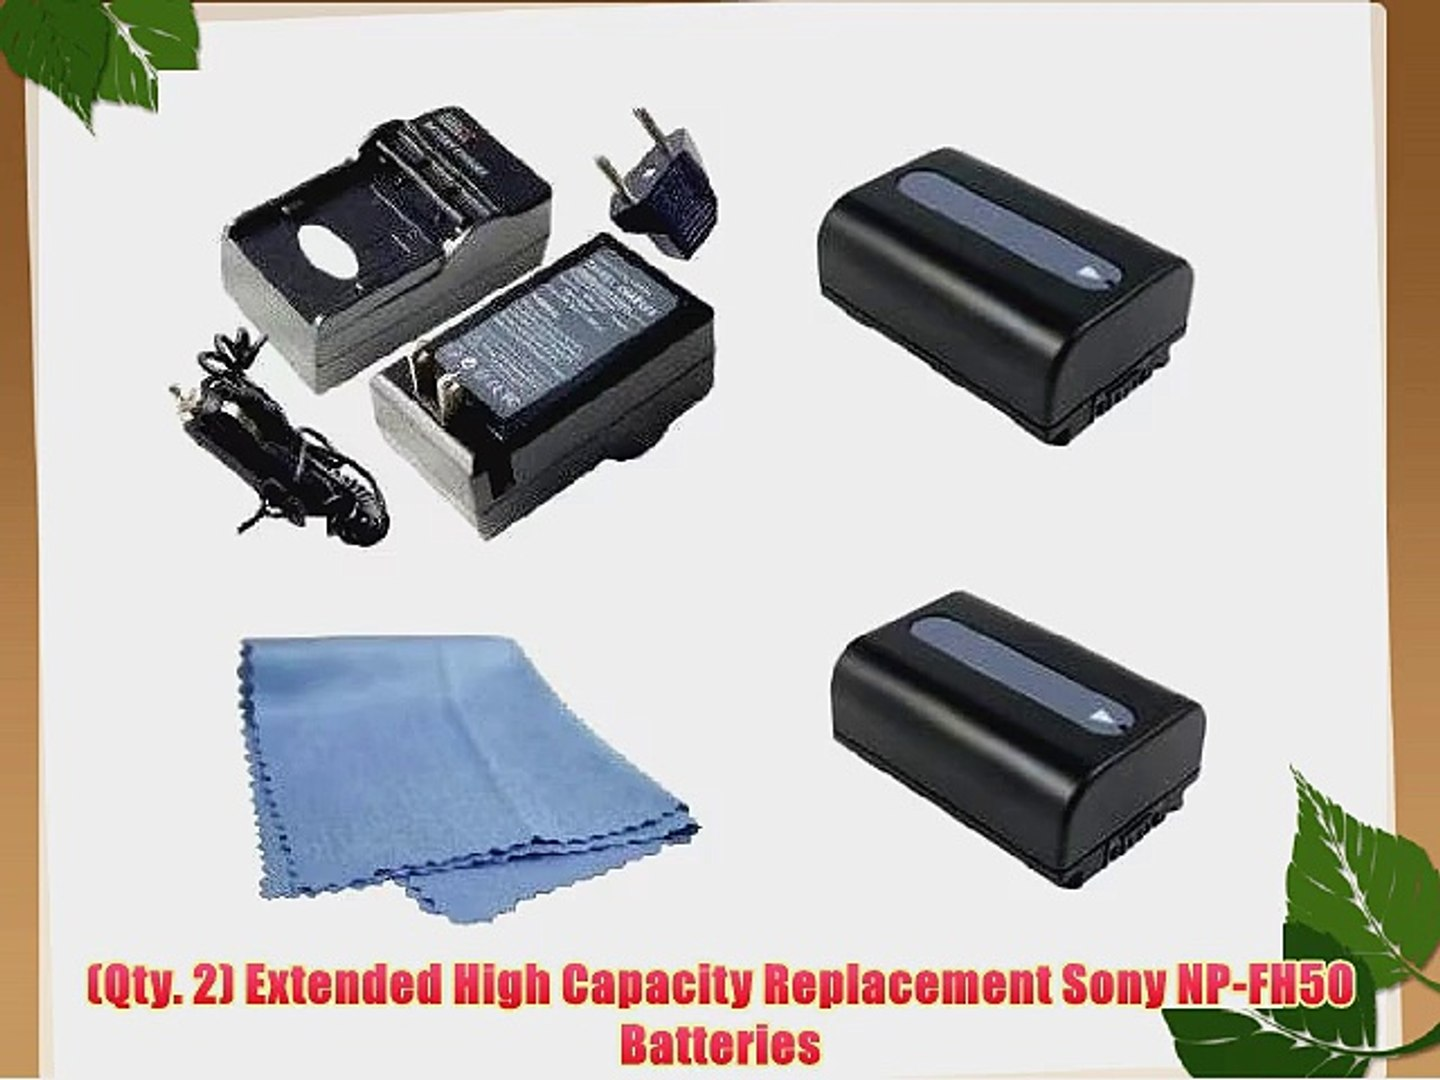 SaveOn 2 Pack Battery and Charger Kit includes Two High Capacity Sony NP-FH50 Batteries   Rapid